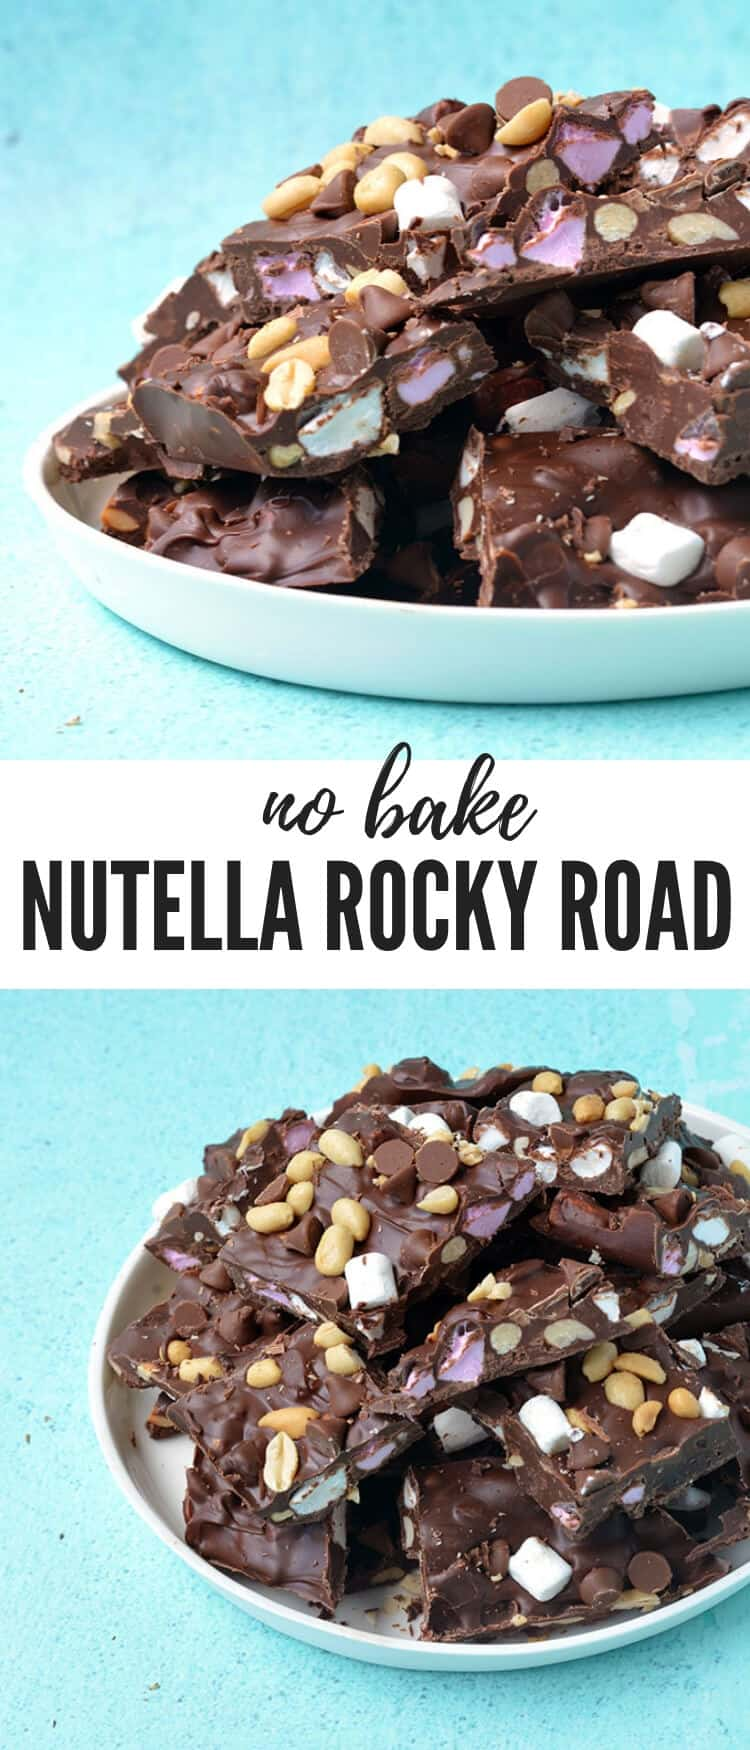 You'll love this five ingredient Nutella Rocky Road Bark. Filled with mini marshmallows and roasted peanuts, it's a super easy no bake treat - perfect for Christmas or holiday gifts. Recipe from sweetestmenu.com #nutella #rockyroad #chocolate #christmas